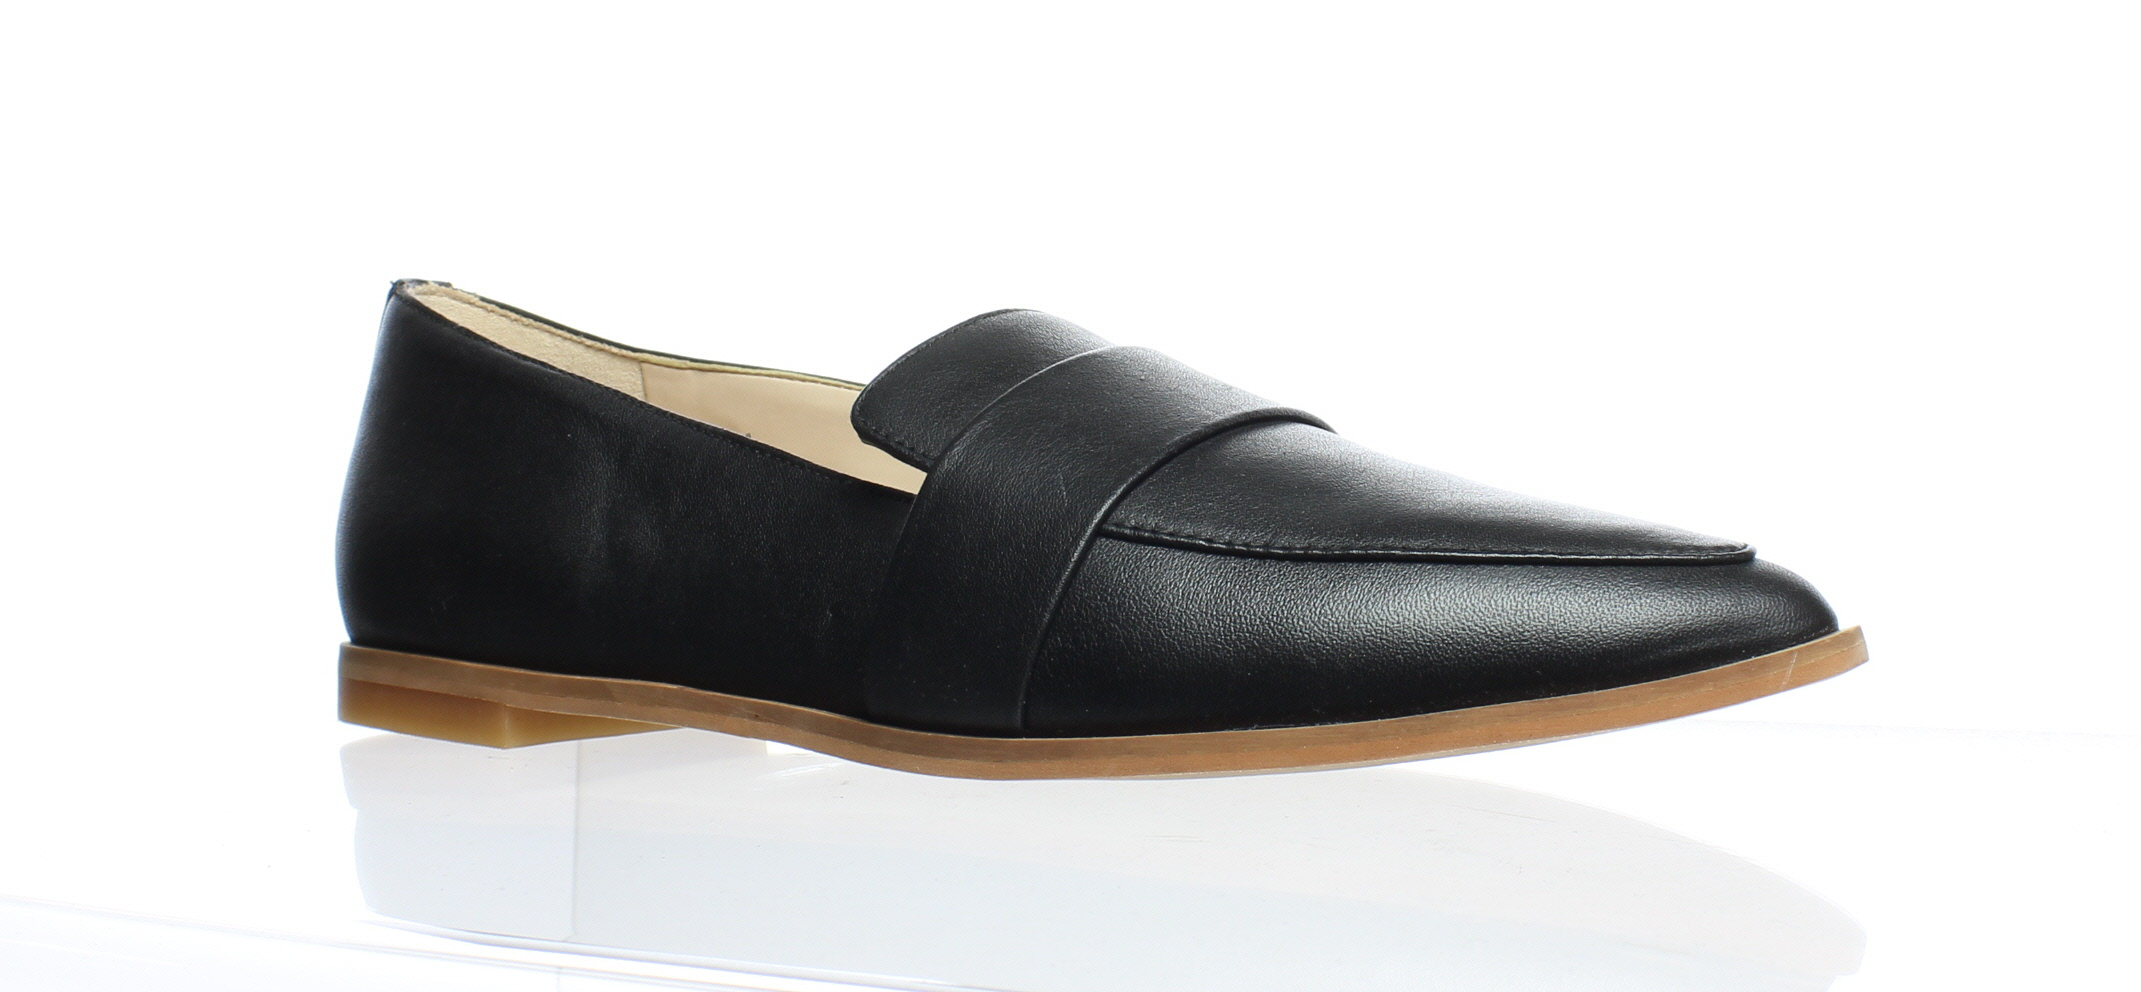 0c6ce7faa23 Dr. Scholl s Womens Ashah Black Loafers Size 9 (68021) 727682477479 ...